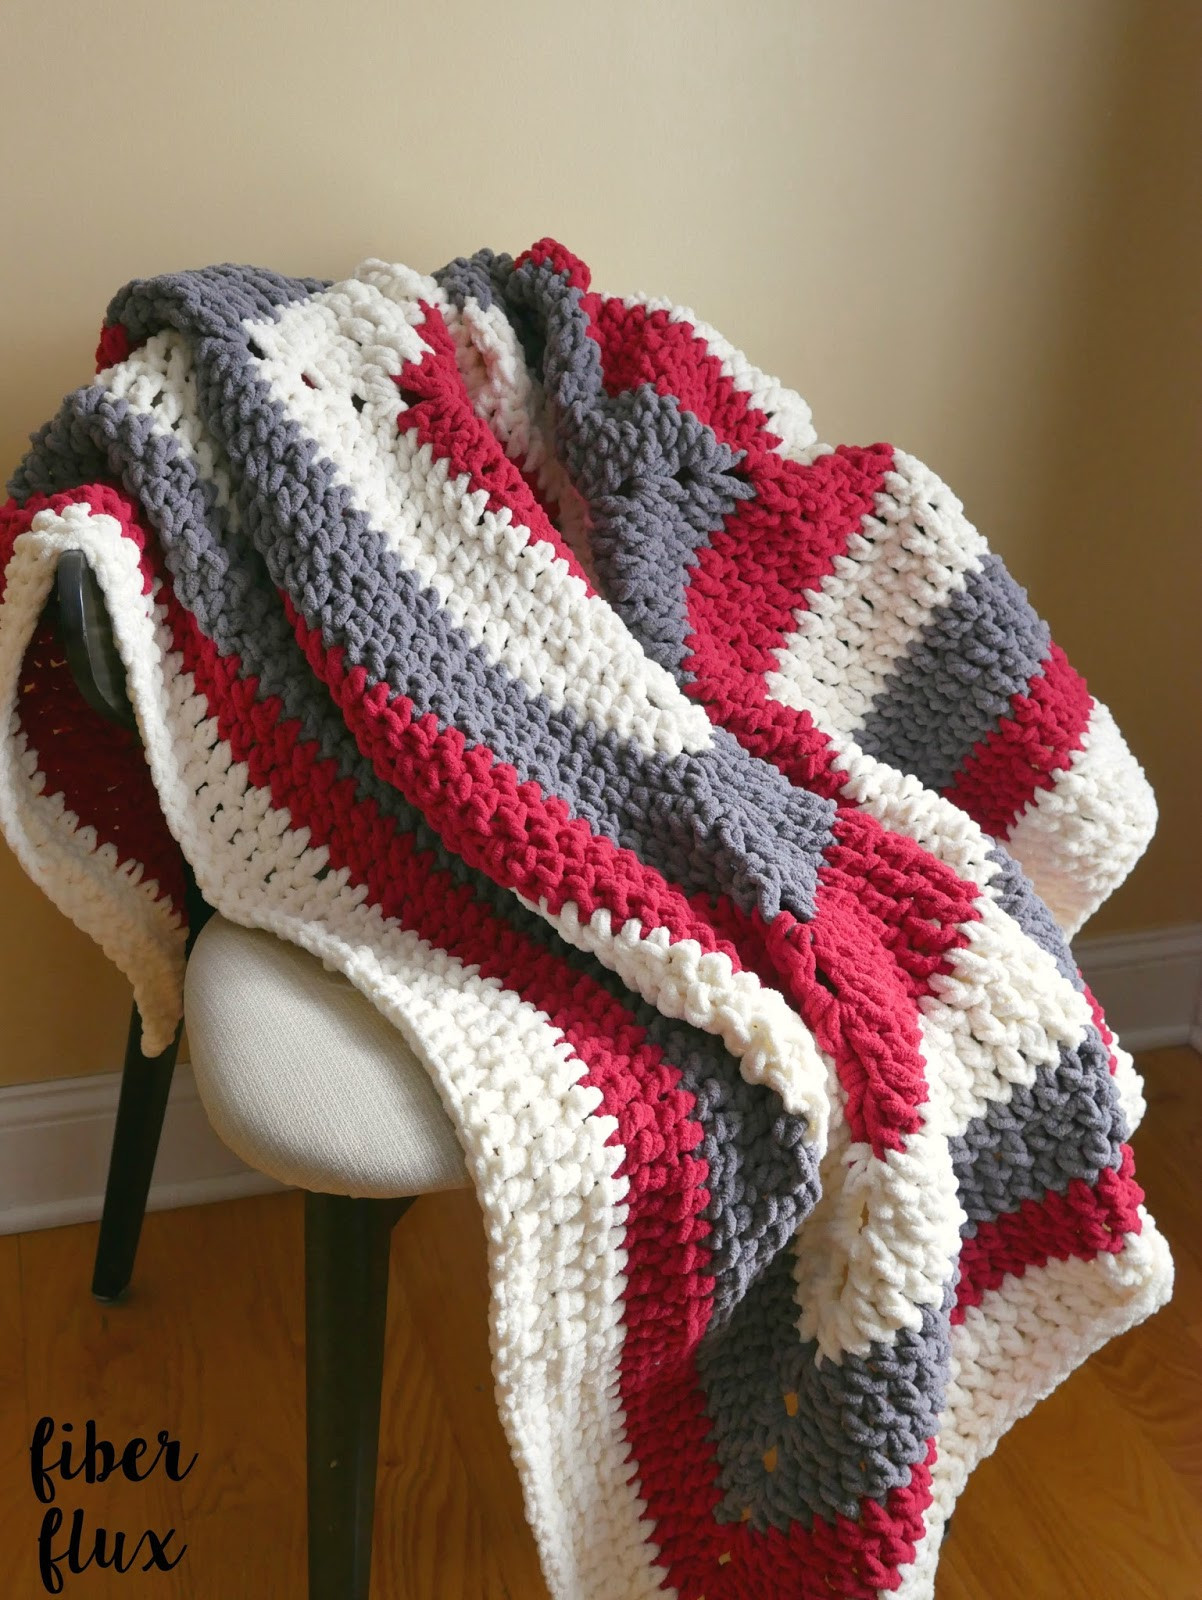 Crochet Throw Blanket Luxury Fiber Flux Free Crochet Pattern Snow Berries Throw Of Great 44 Pics Crochet Throw Blanket